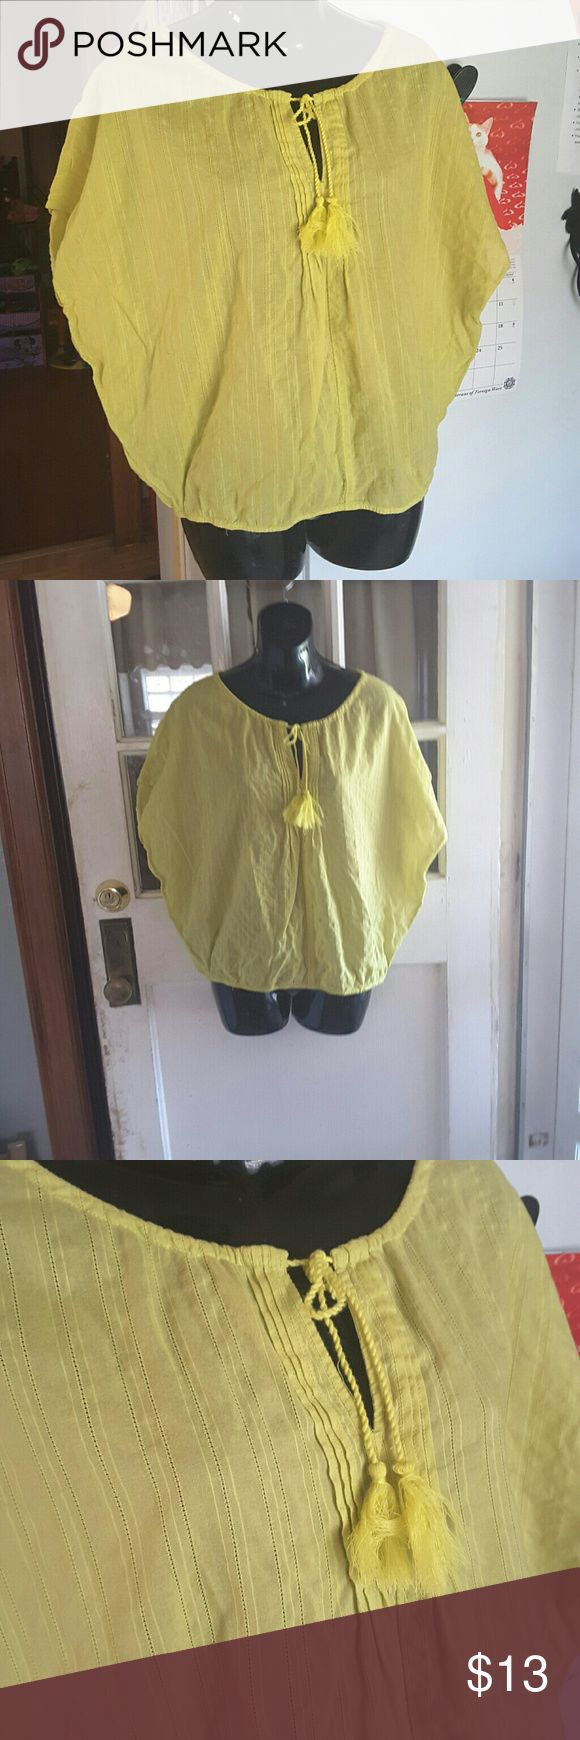 Loft Almost Neon green batwing top very lite flowy  vertical strippes see picture #4 key hole neck with tassels grate for the beach LOFT Tops